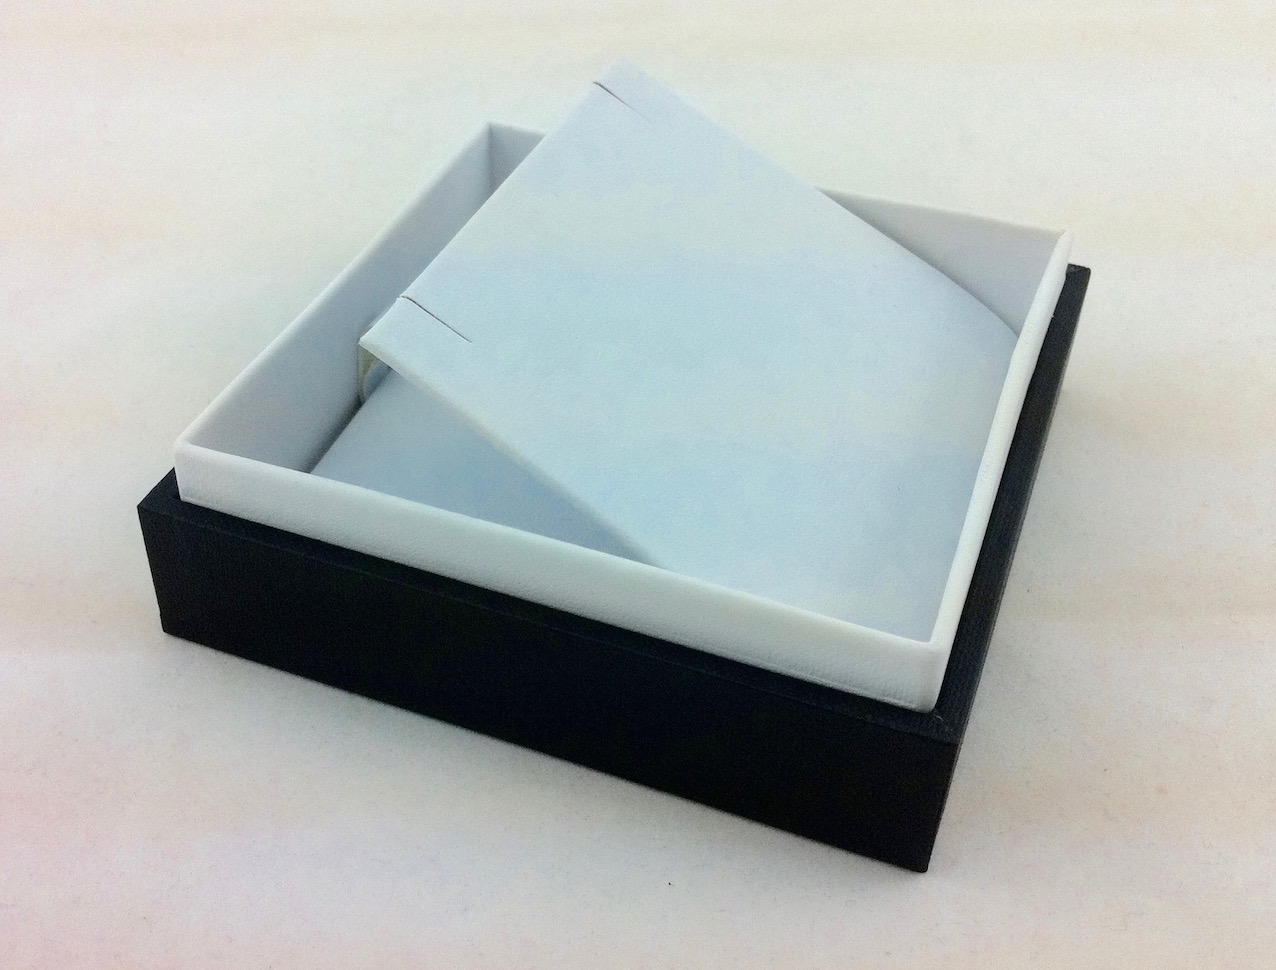 B&W x large earring box